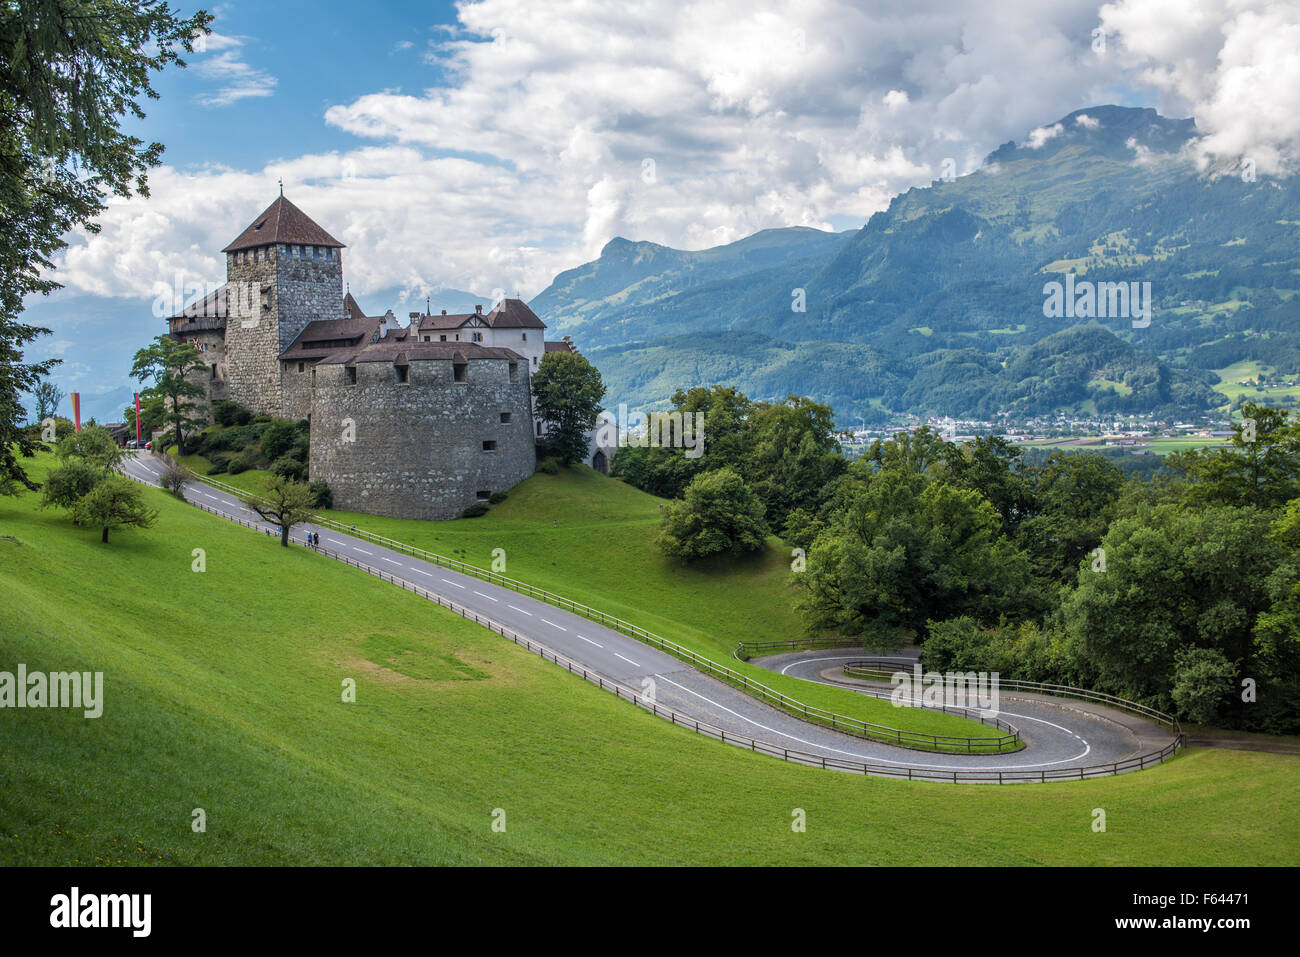 Vaduz Castle, the palace and official residence of the Prince of Liechtenstein. - Stock Image